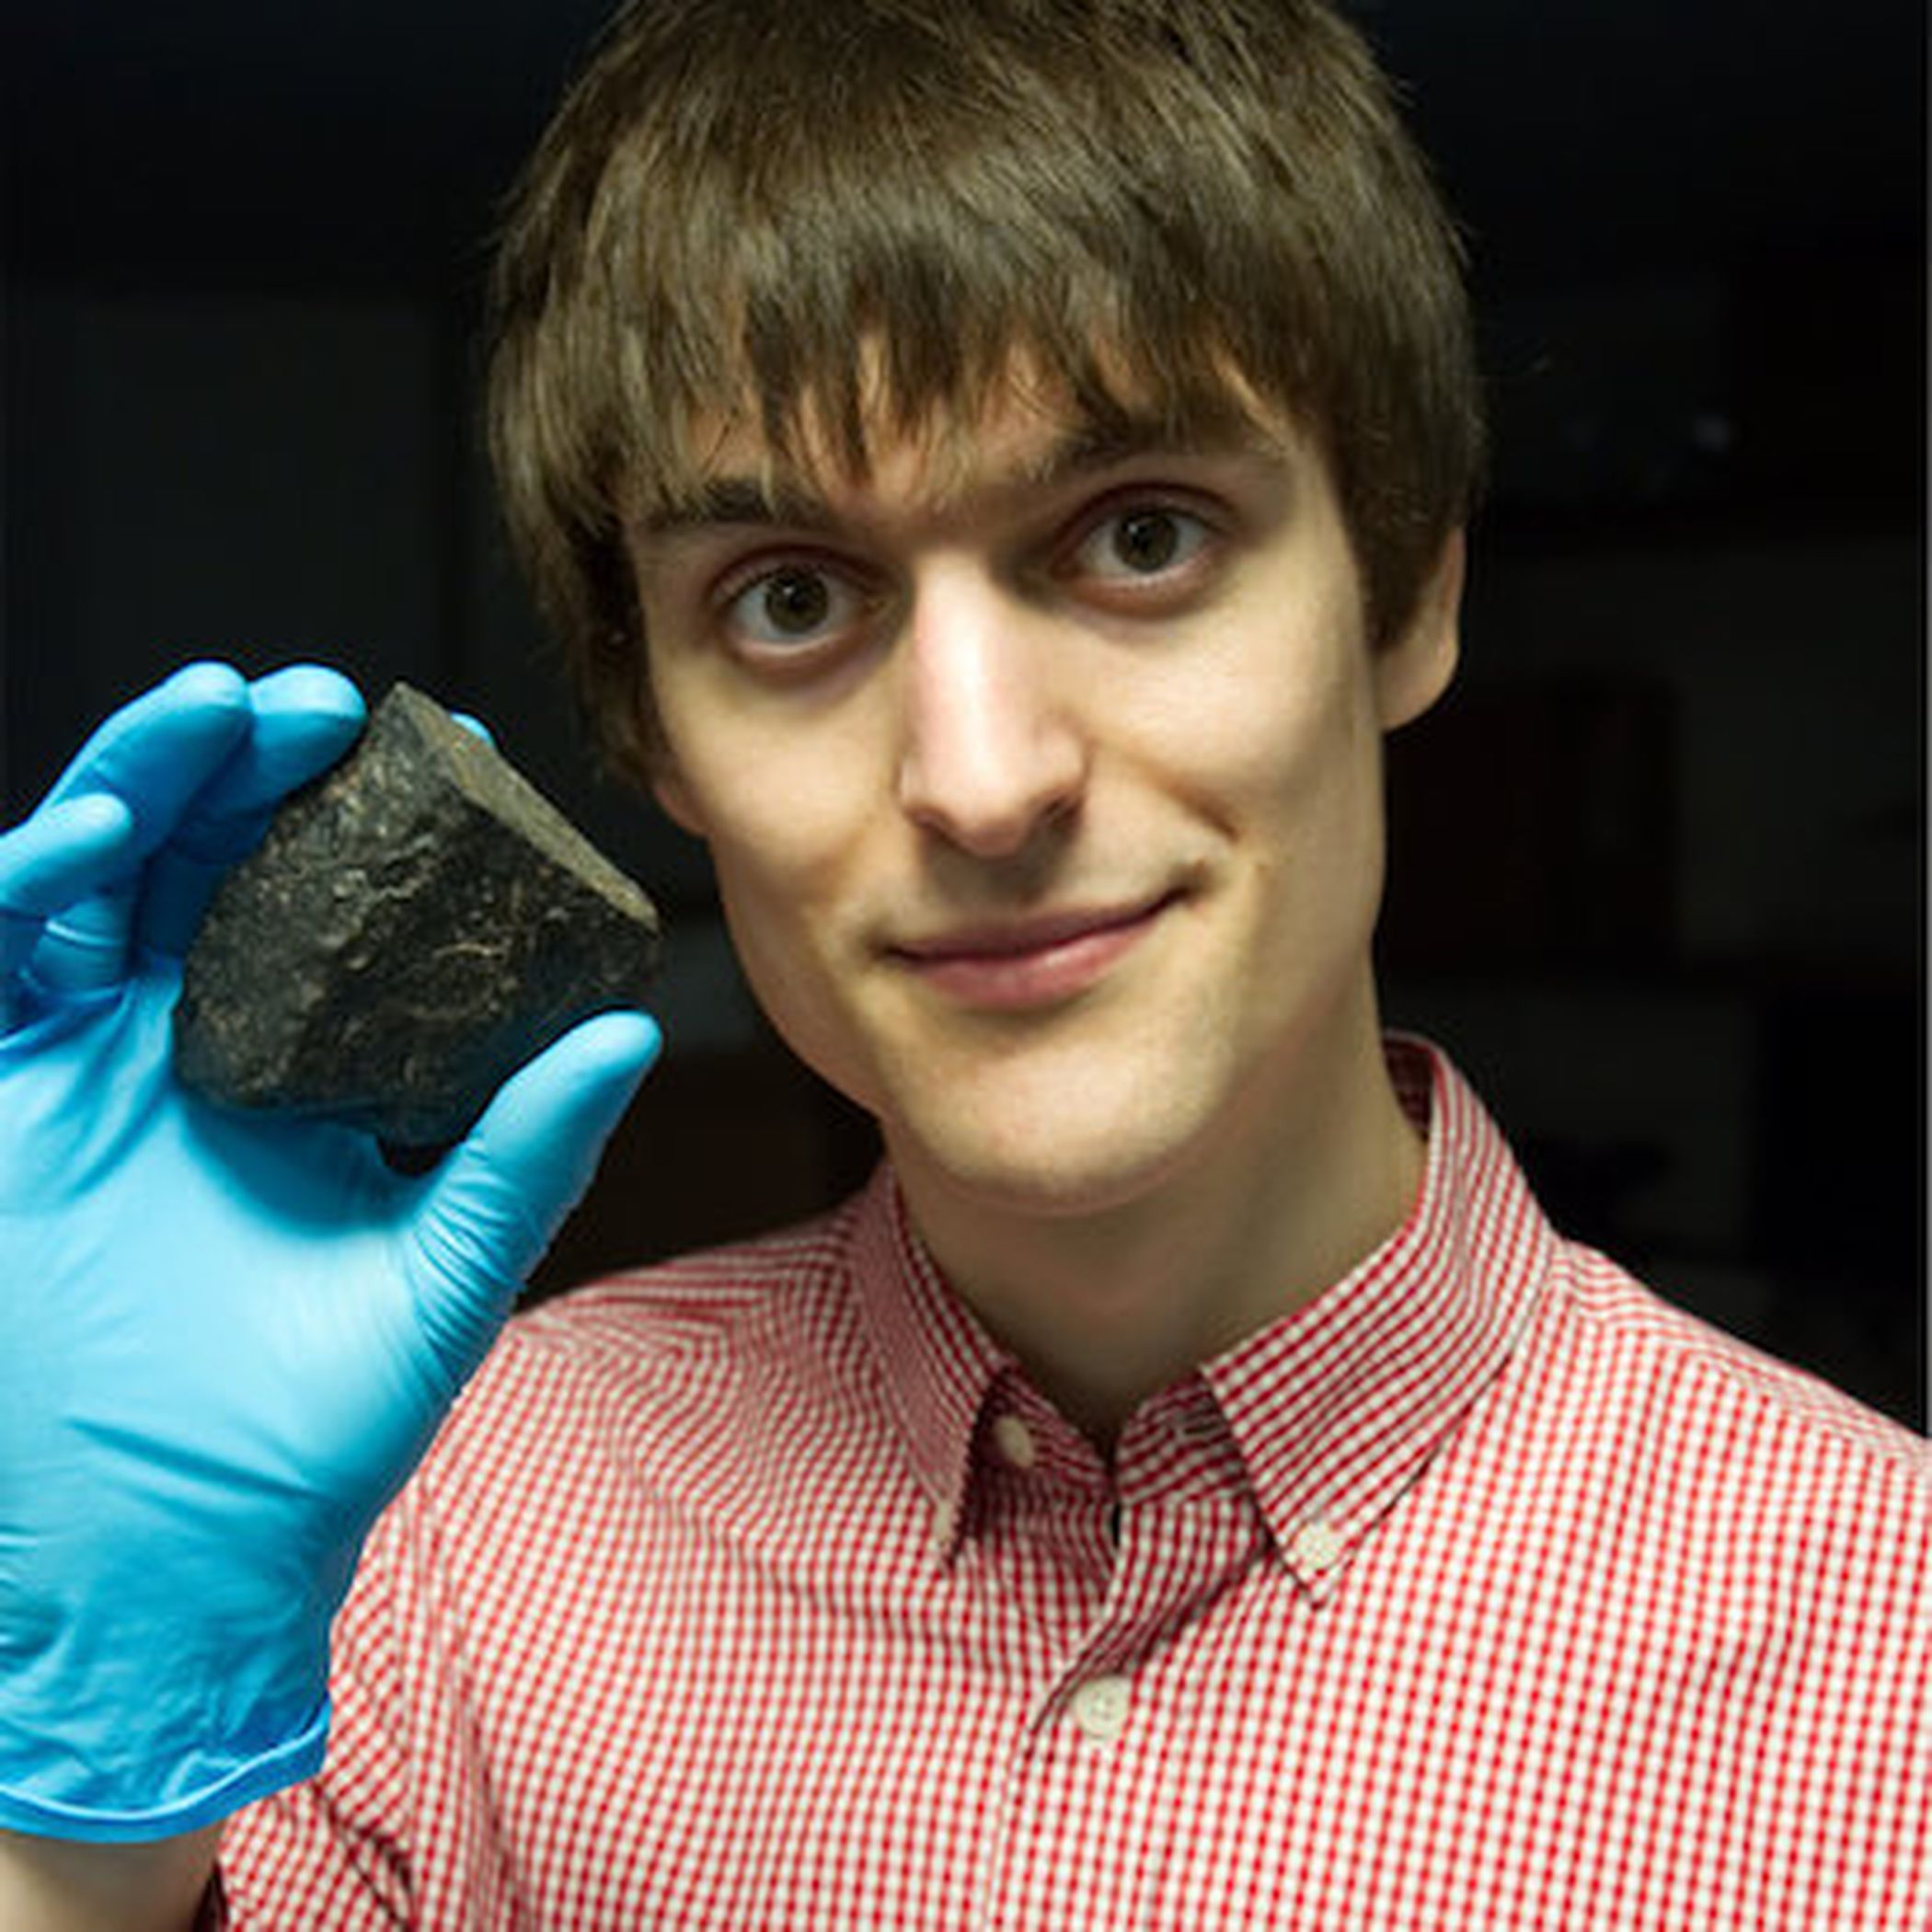 Space scientist Timothy Gregory holding a meteorite